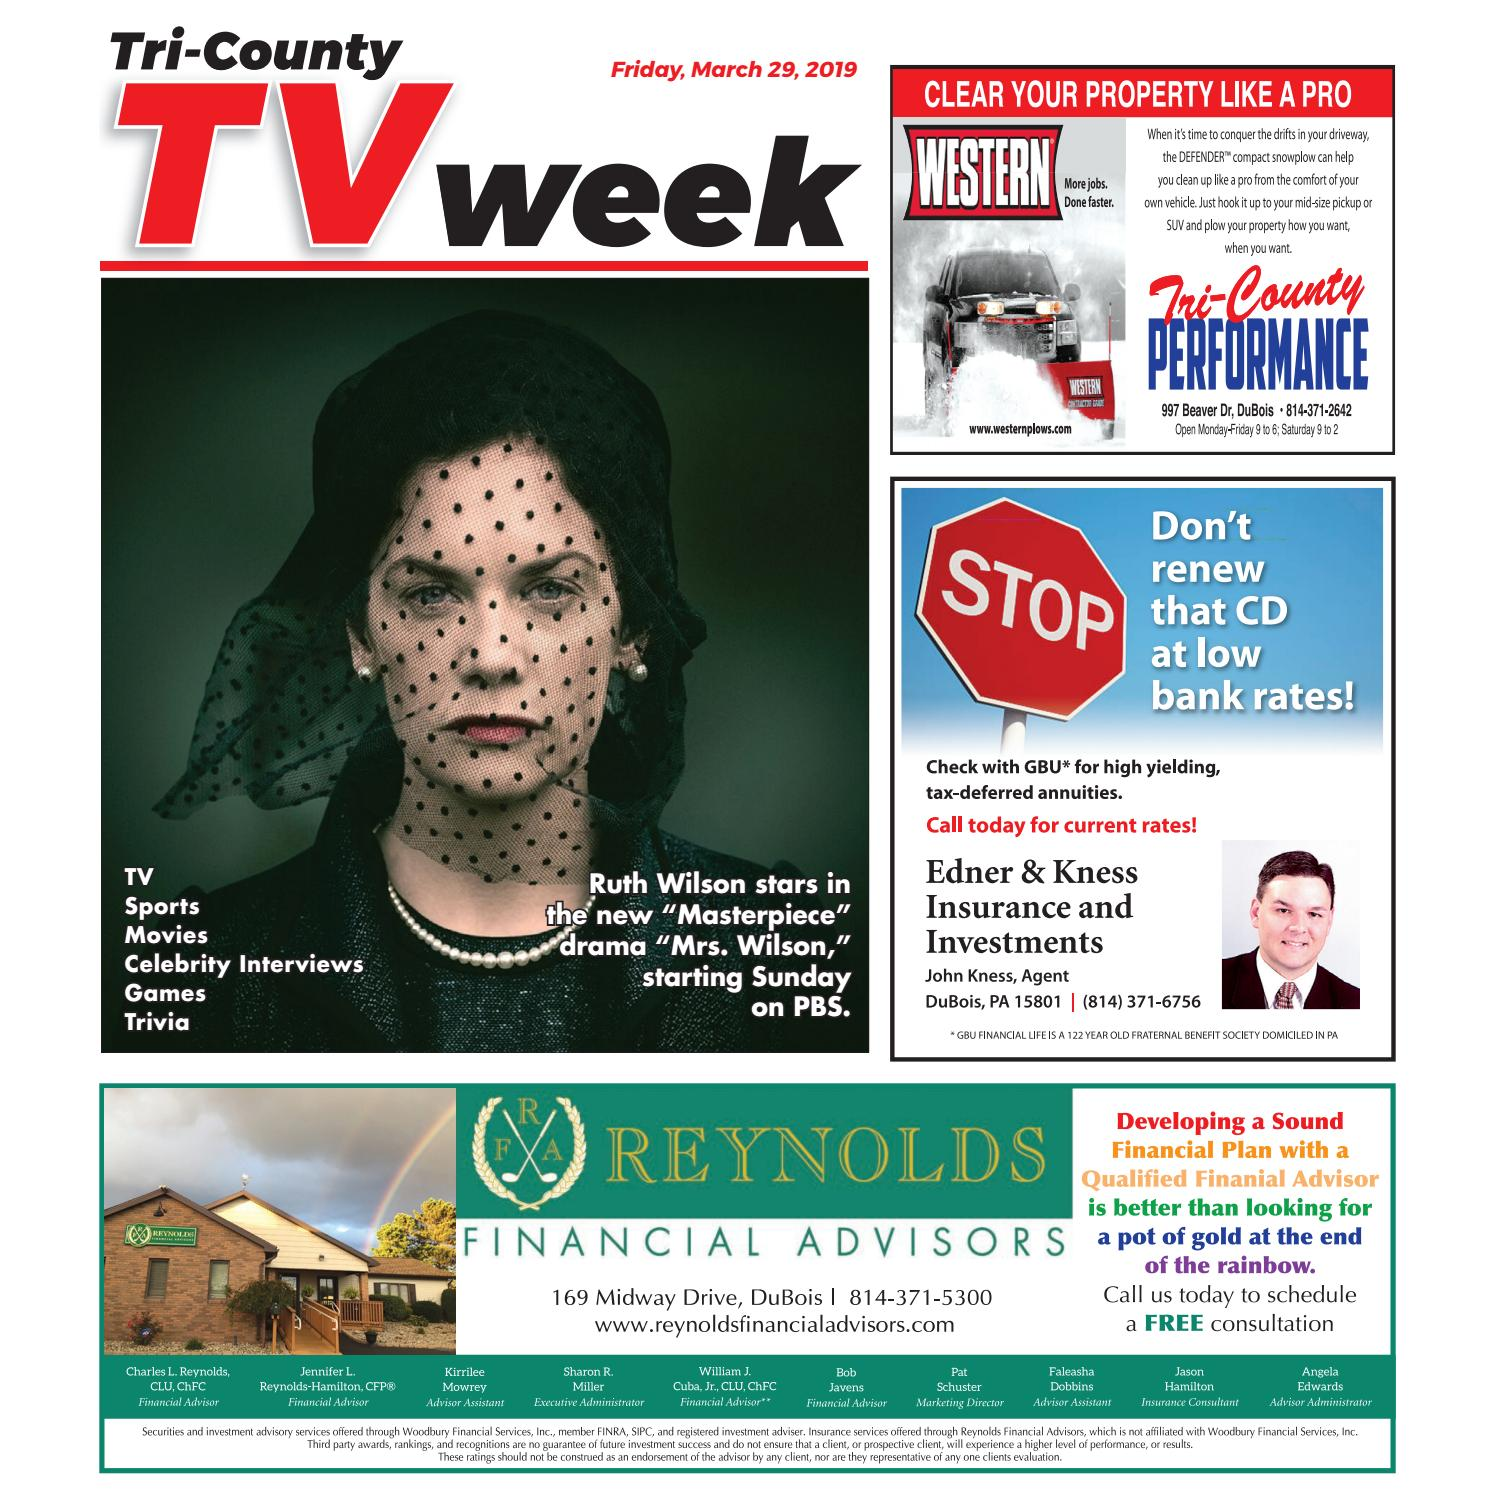 TV Week, Friday, March 29, 2019 by Tri-County TV Week - issuu